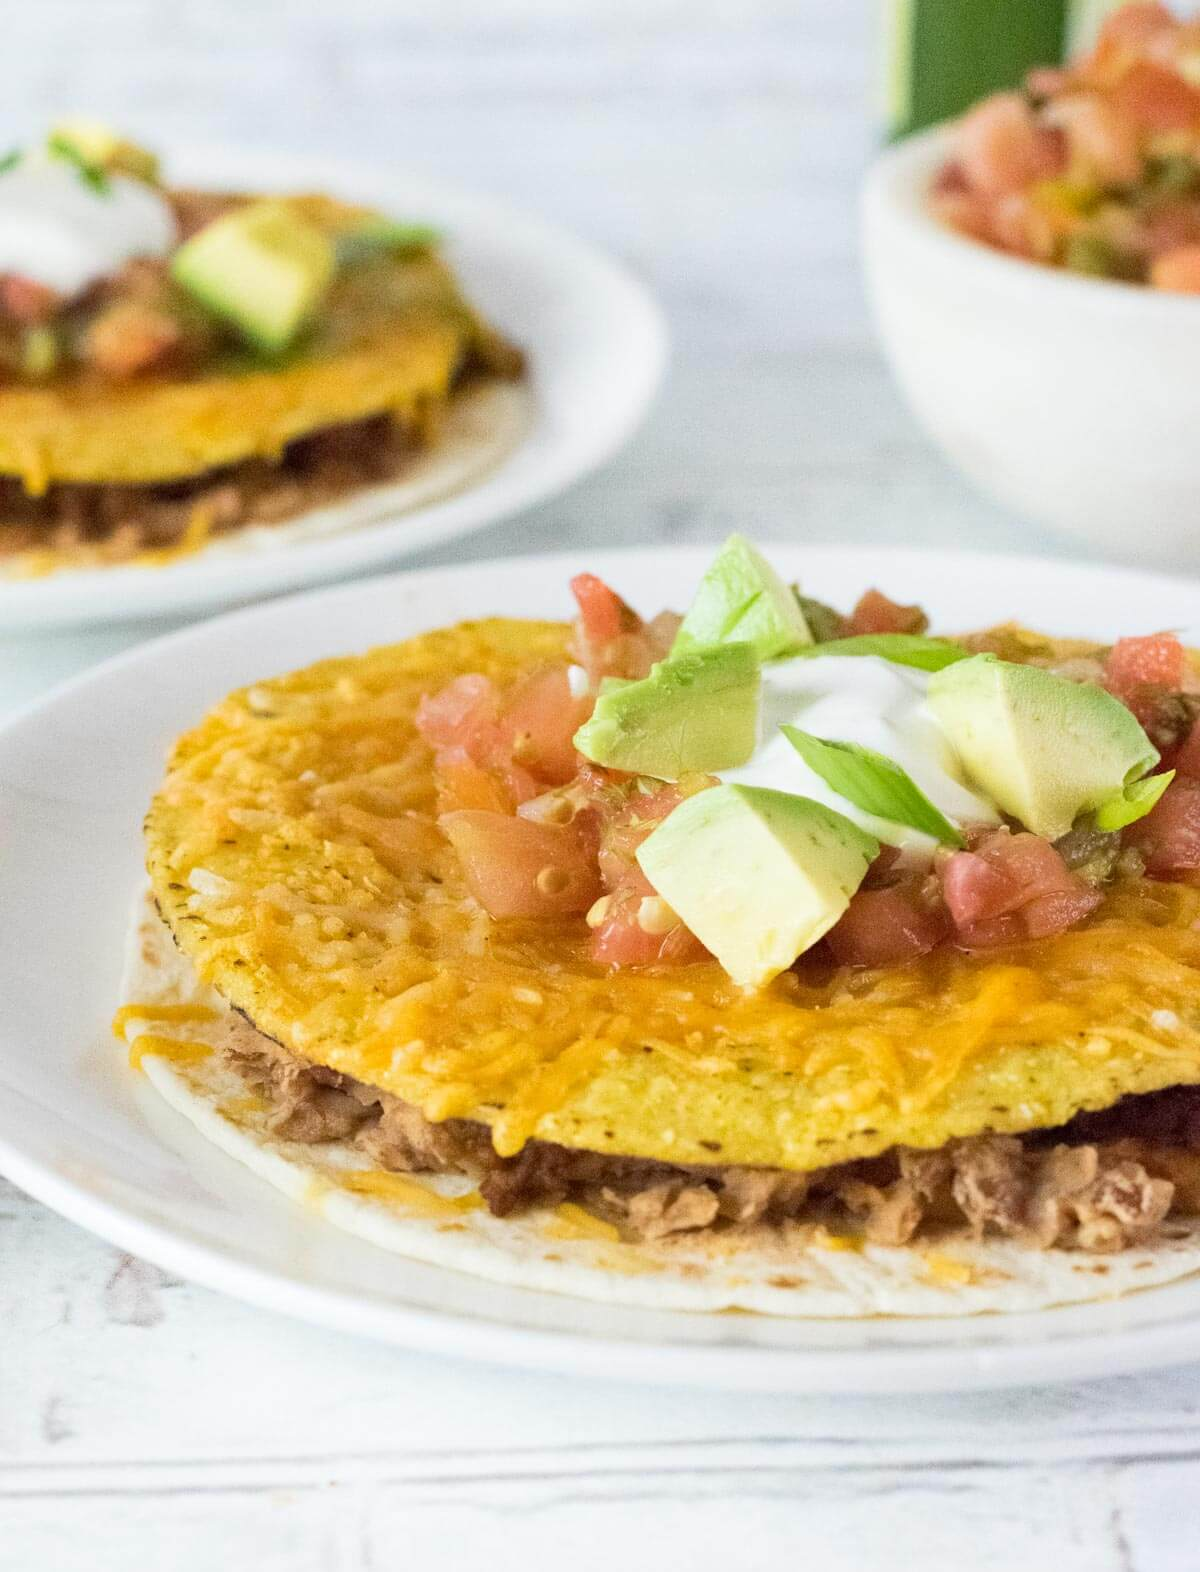 Mexican pizza toppings shown with avocado, tomato, sour cream.